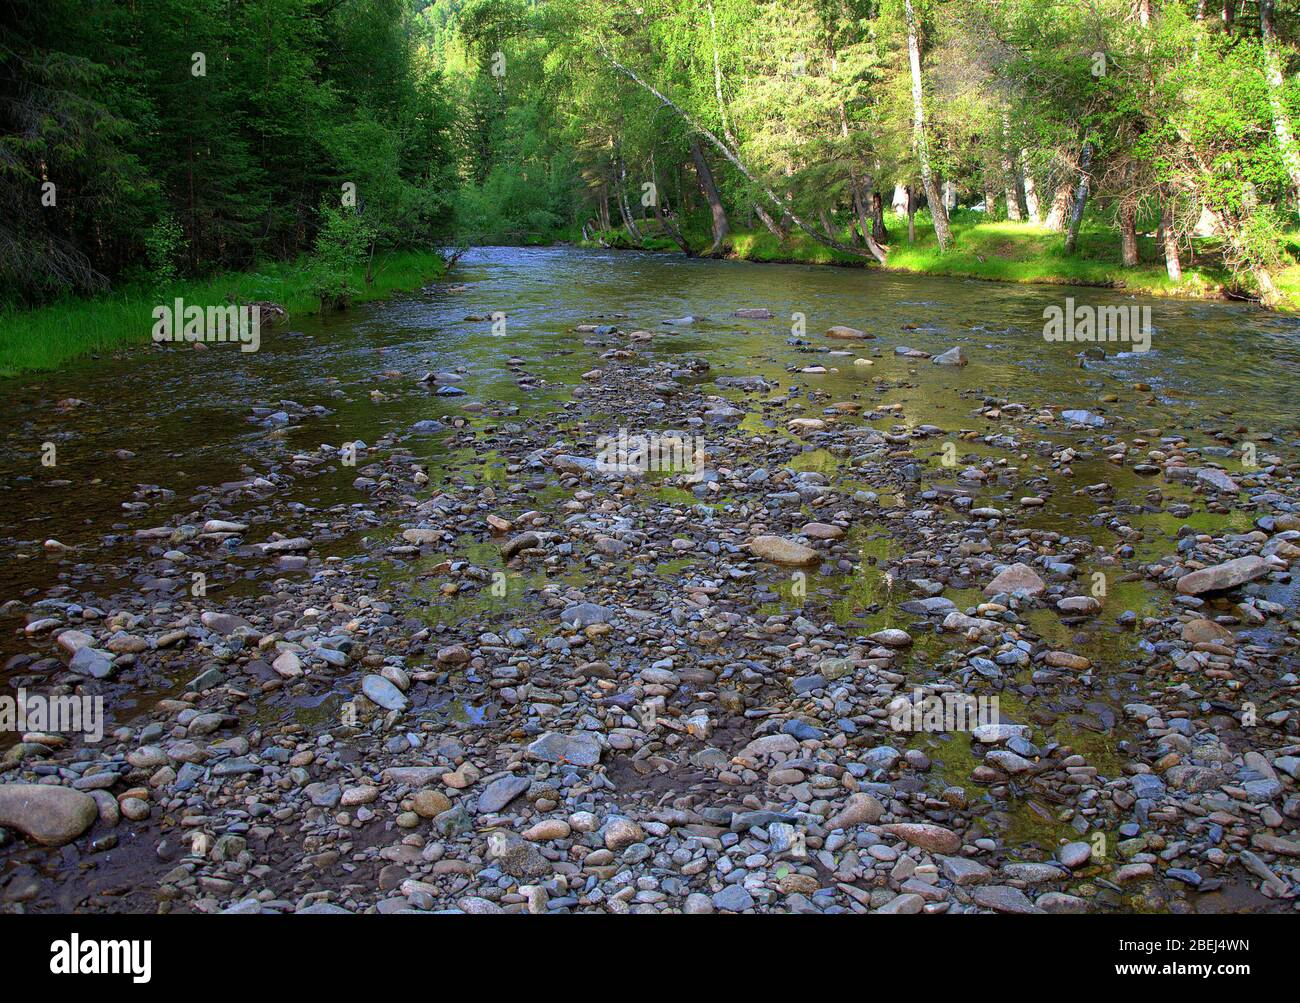 A shallow rocky river flowing serenely through the forest. Sema River, Altai, Siberia, Russia. Stock Photo